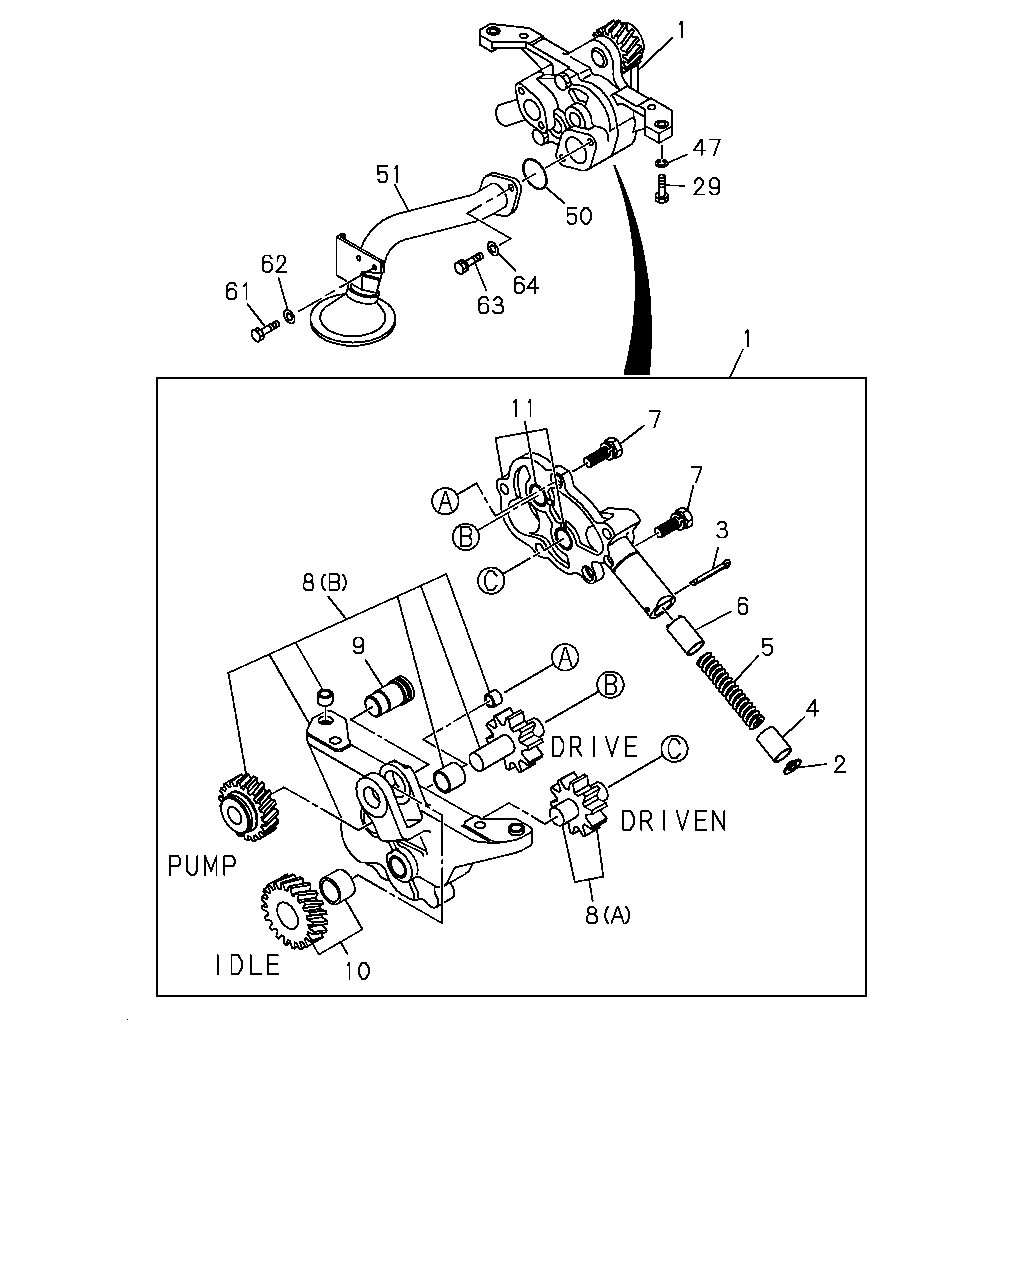 c e 10653 exz 90 95 engine emission engine electrical Parallel Circuit Practice code part number name l r production date applied model additional information qty related subgroups